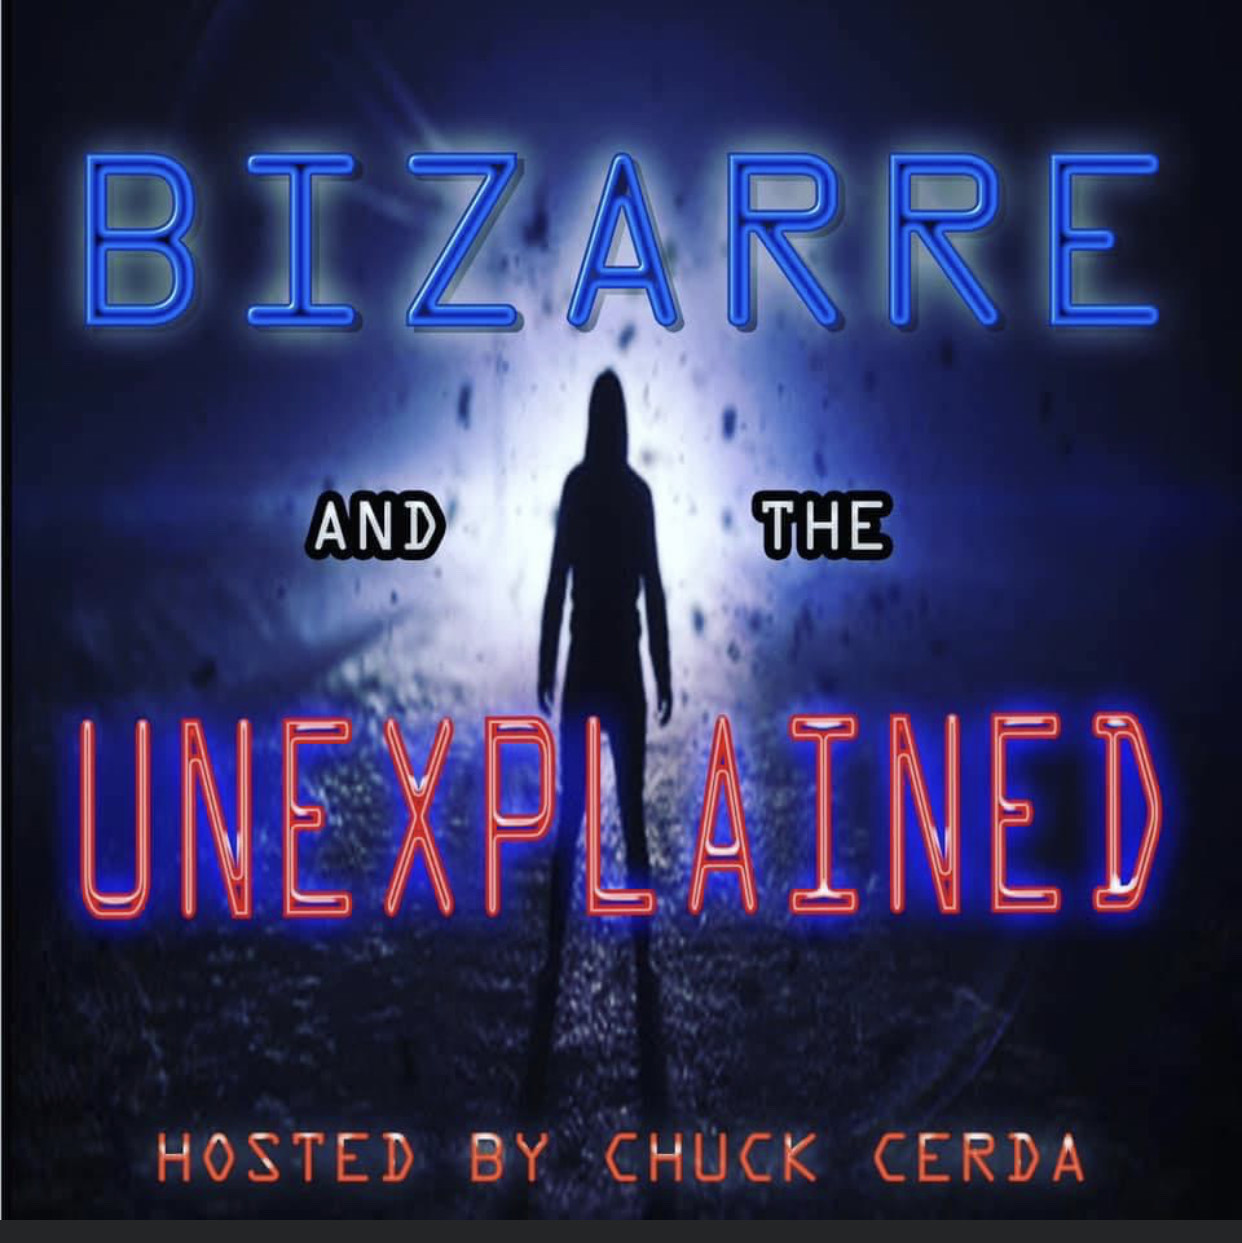 The Bizarre and Unexplained